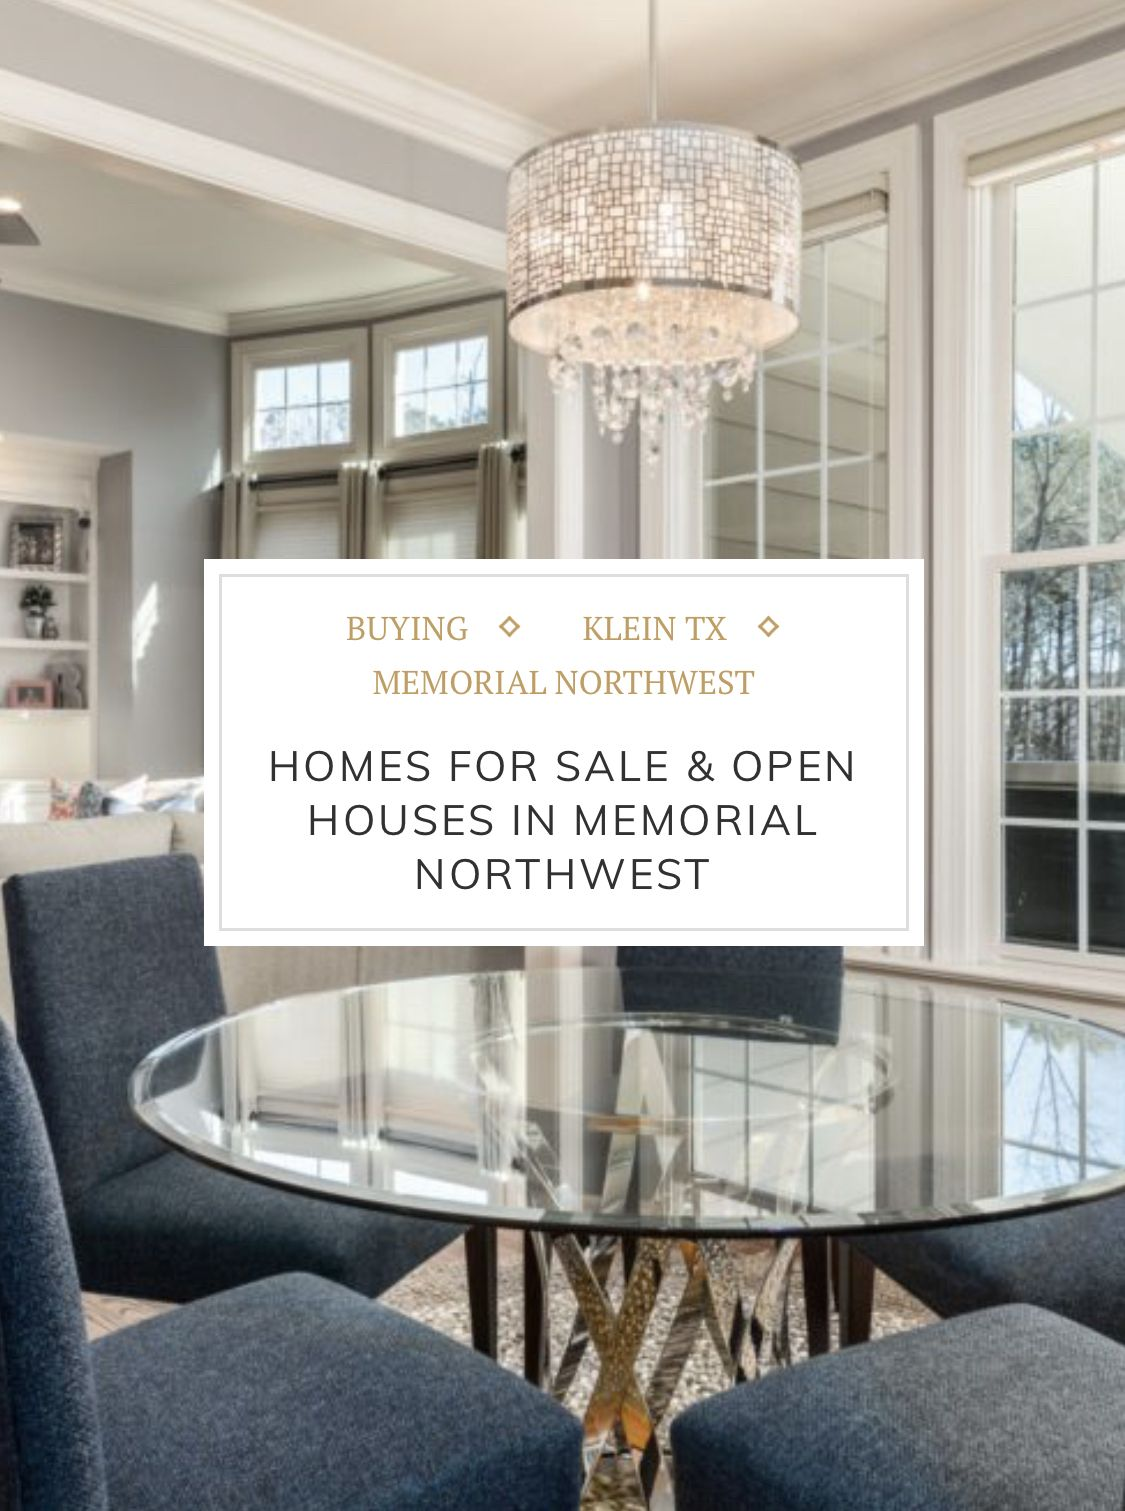 Homes for sale and open houses in Memorial Northwest